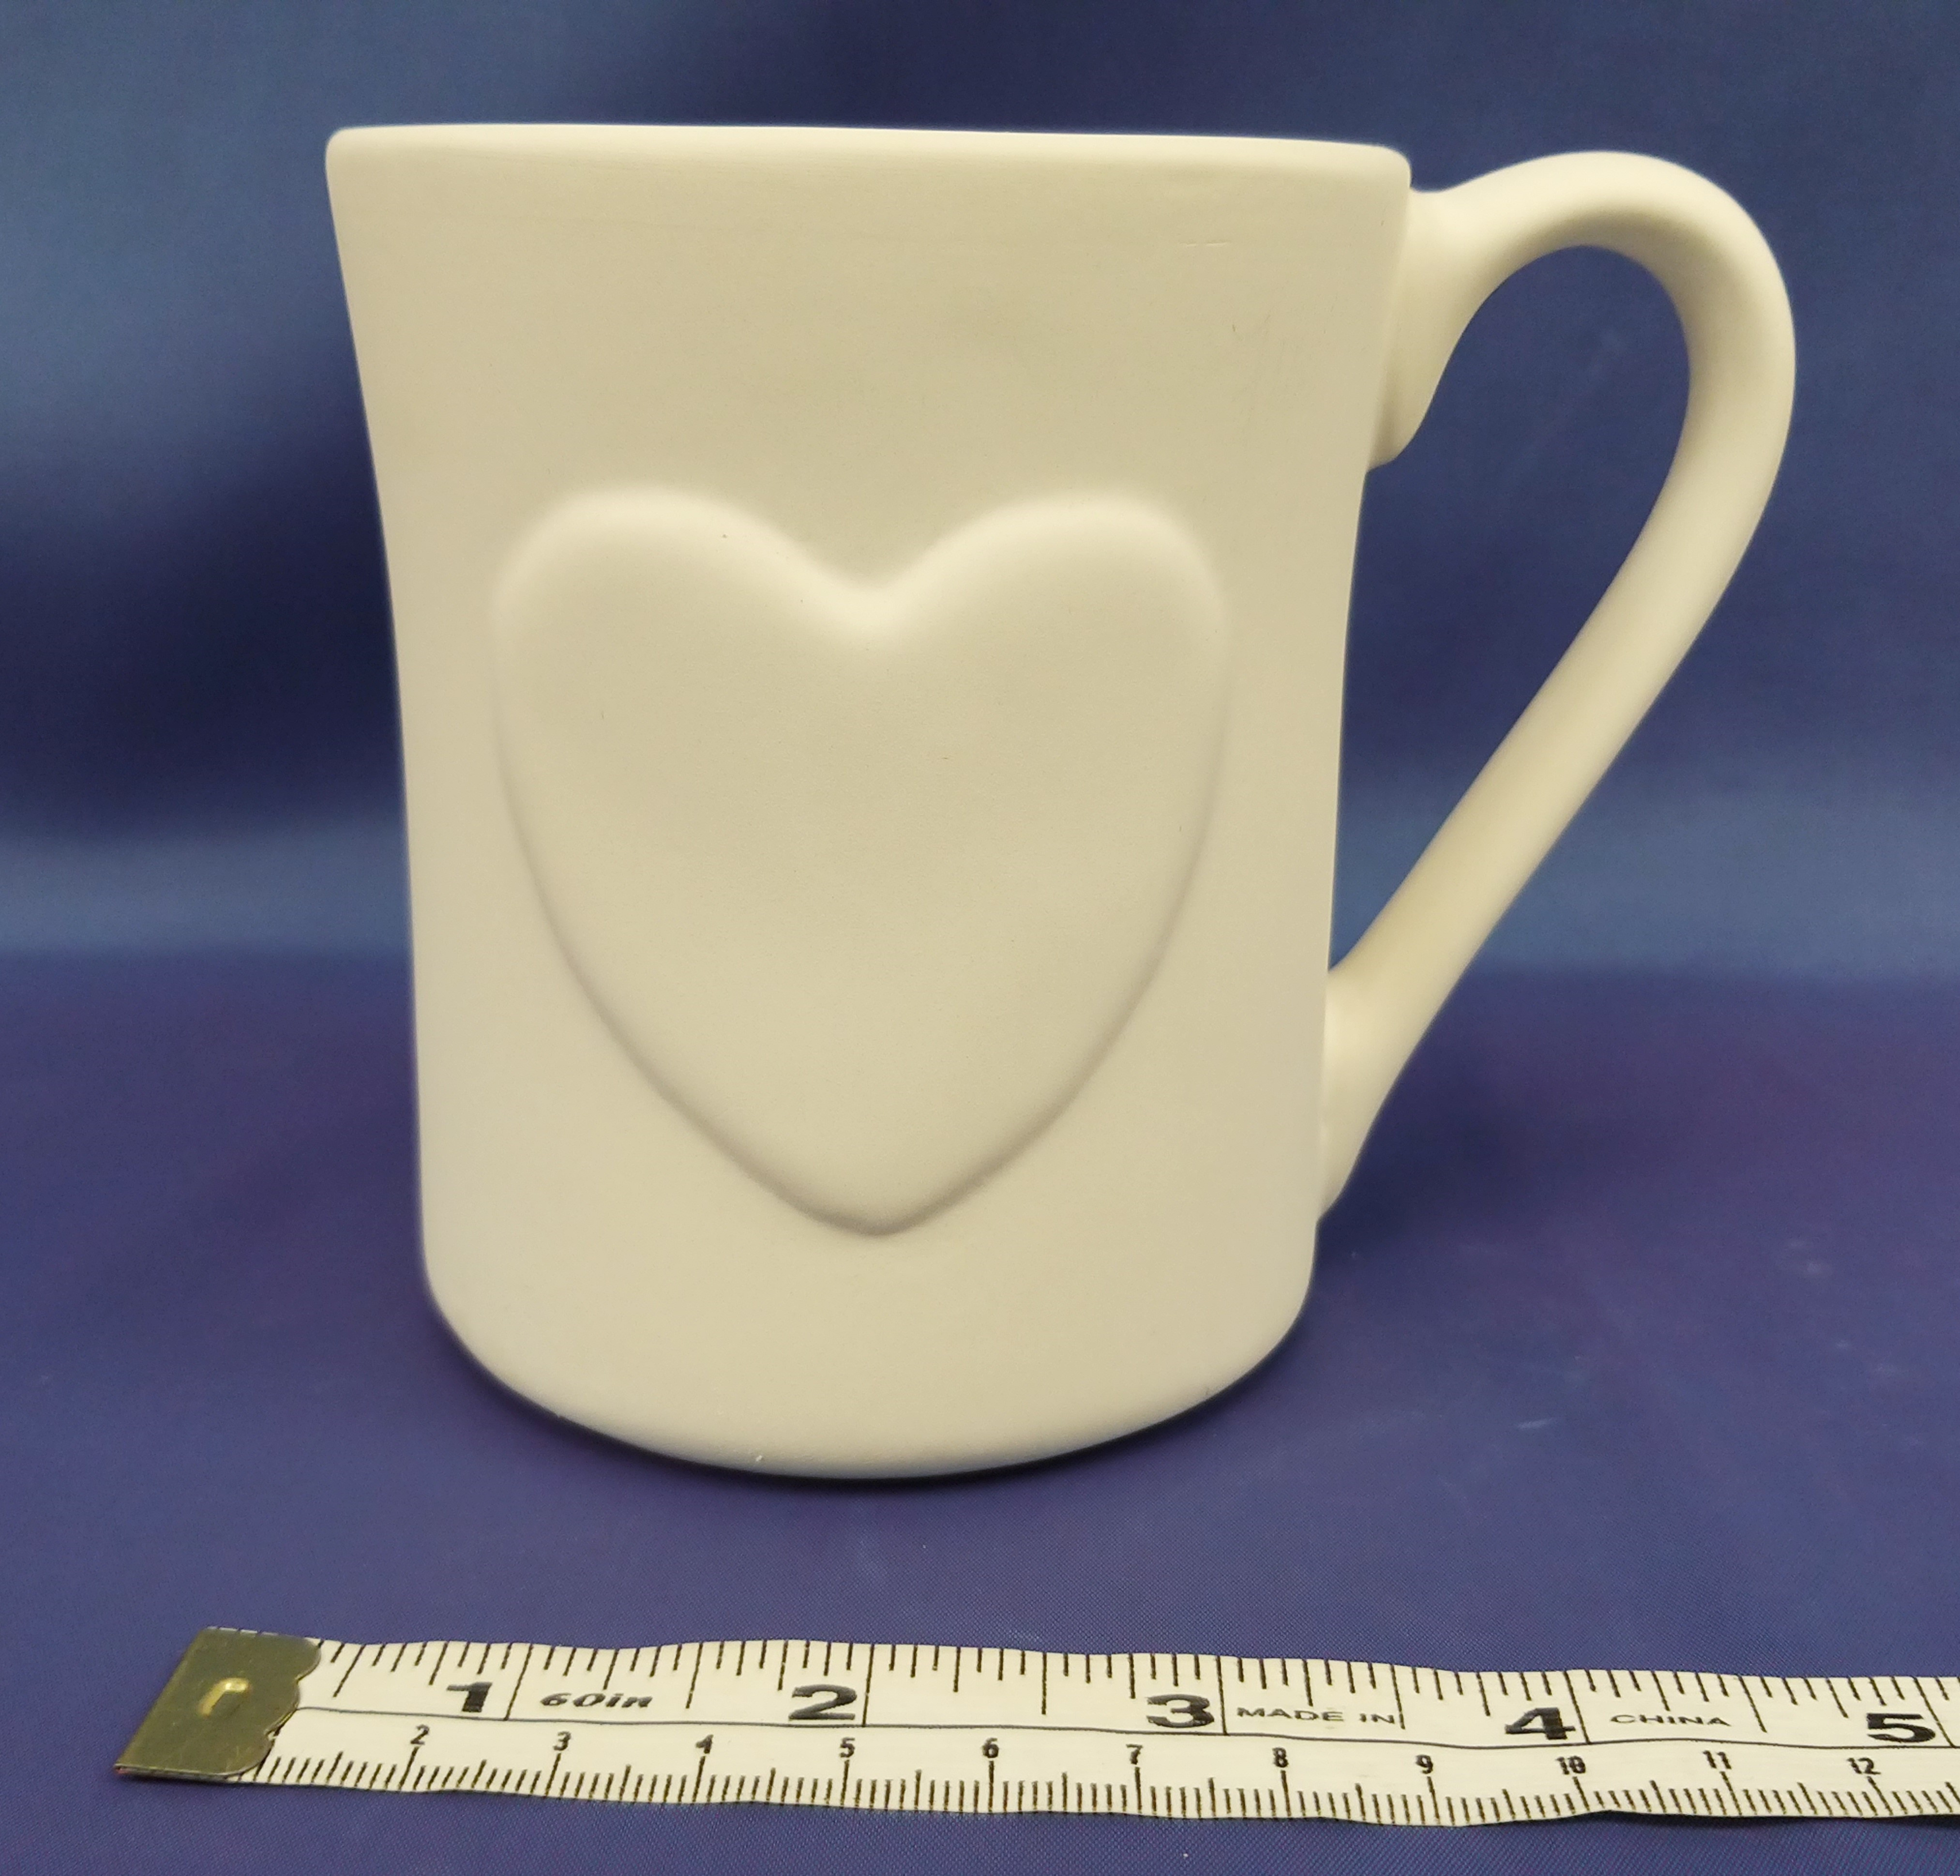 Mug with Heart on front